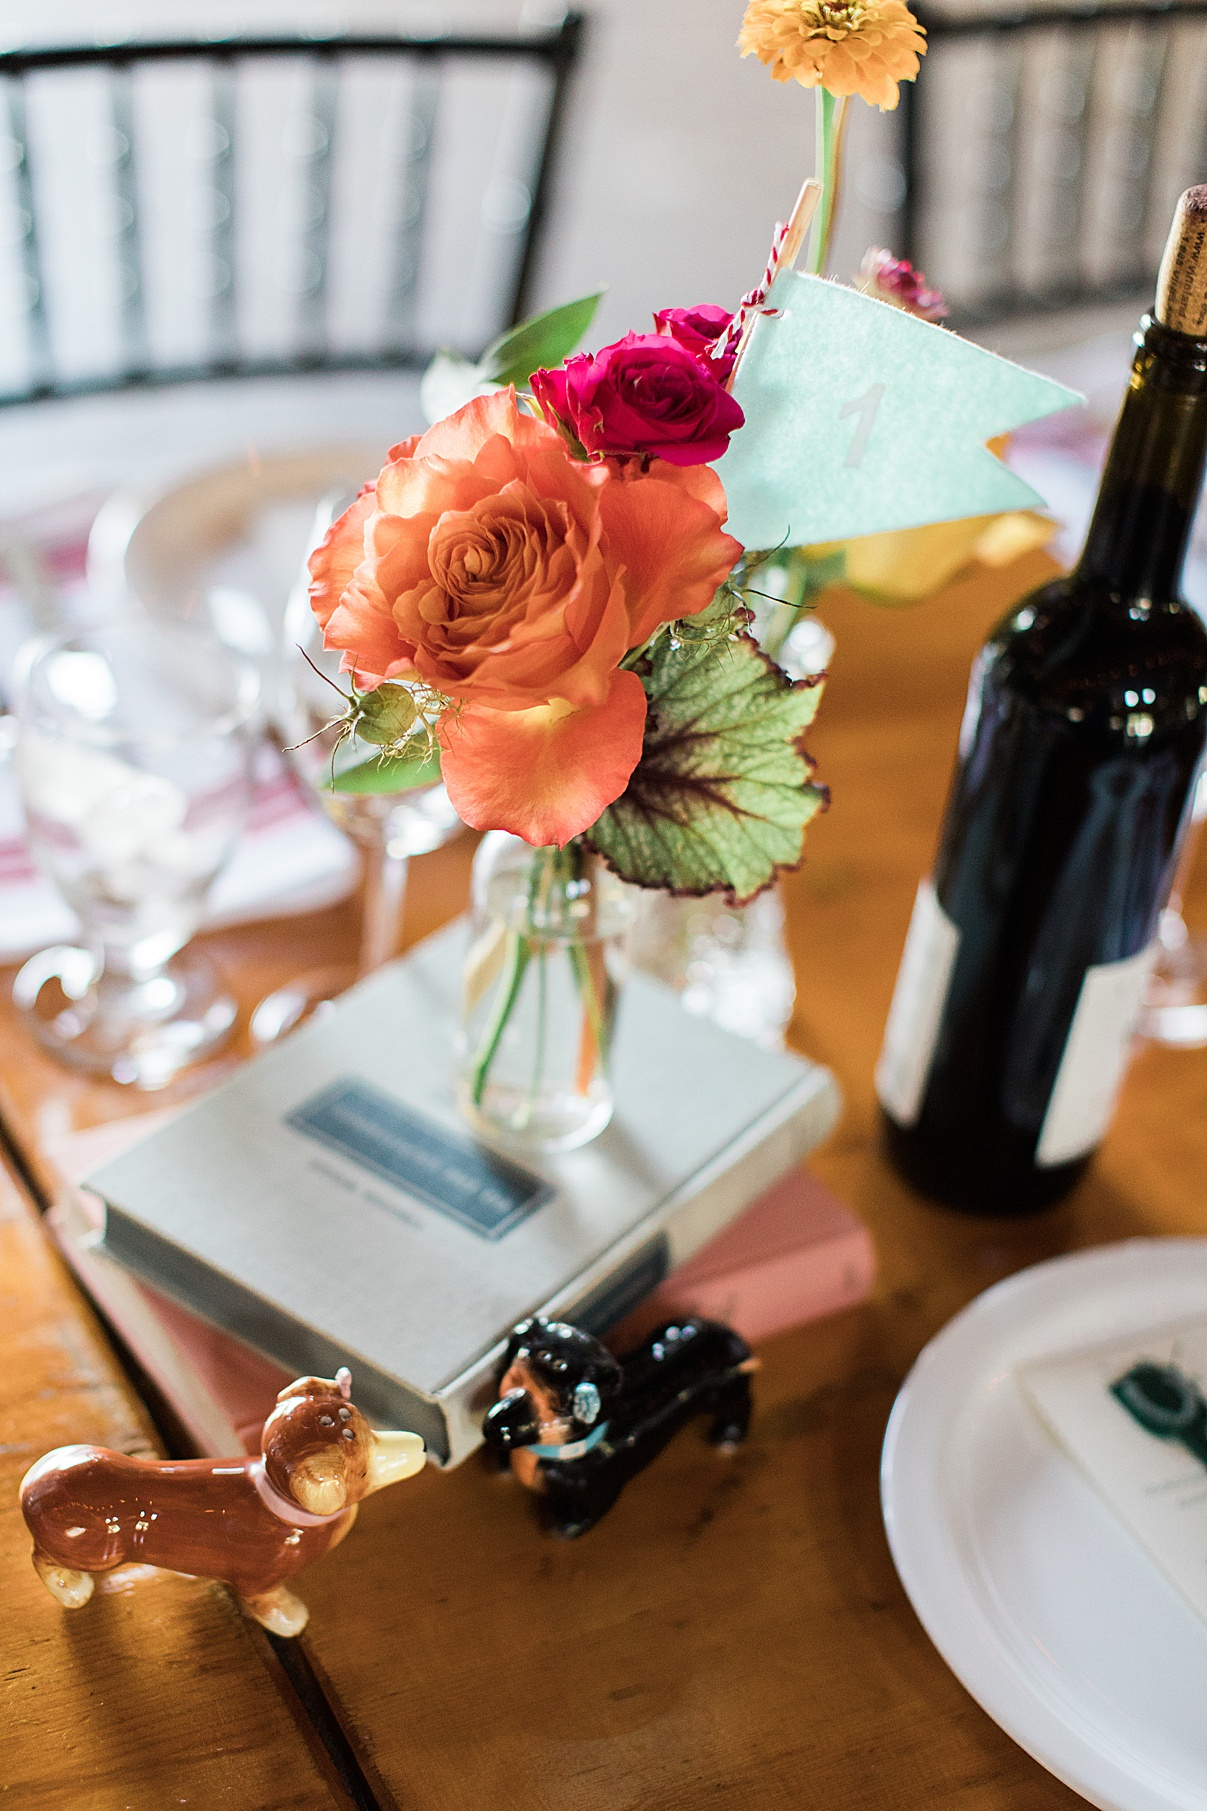 Single flower on book for table setting at reception at Balls Falls, Ontario Wedding| Ontario Wedding Photographer| Toronto Wedding Photographer| 3Photography| 3photography.ca